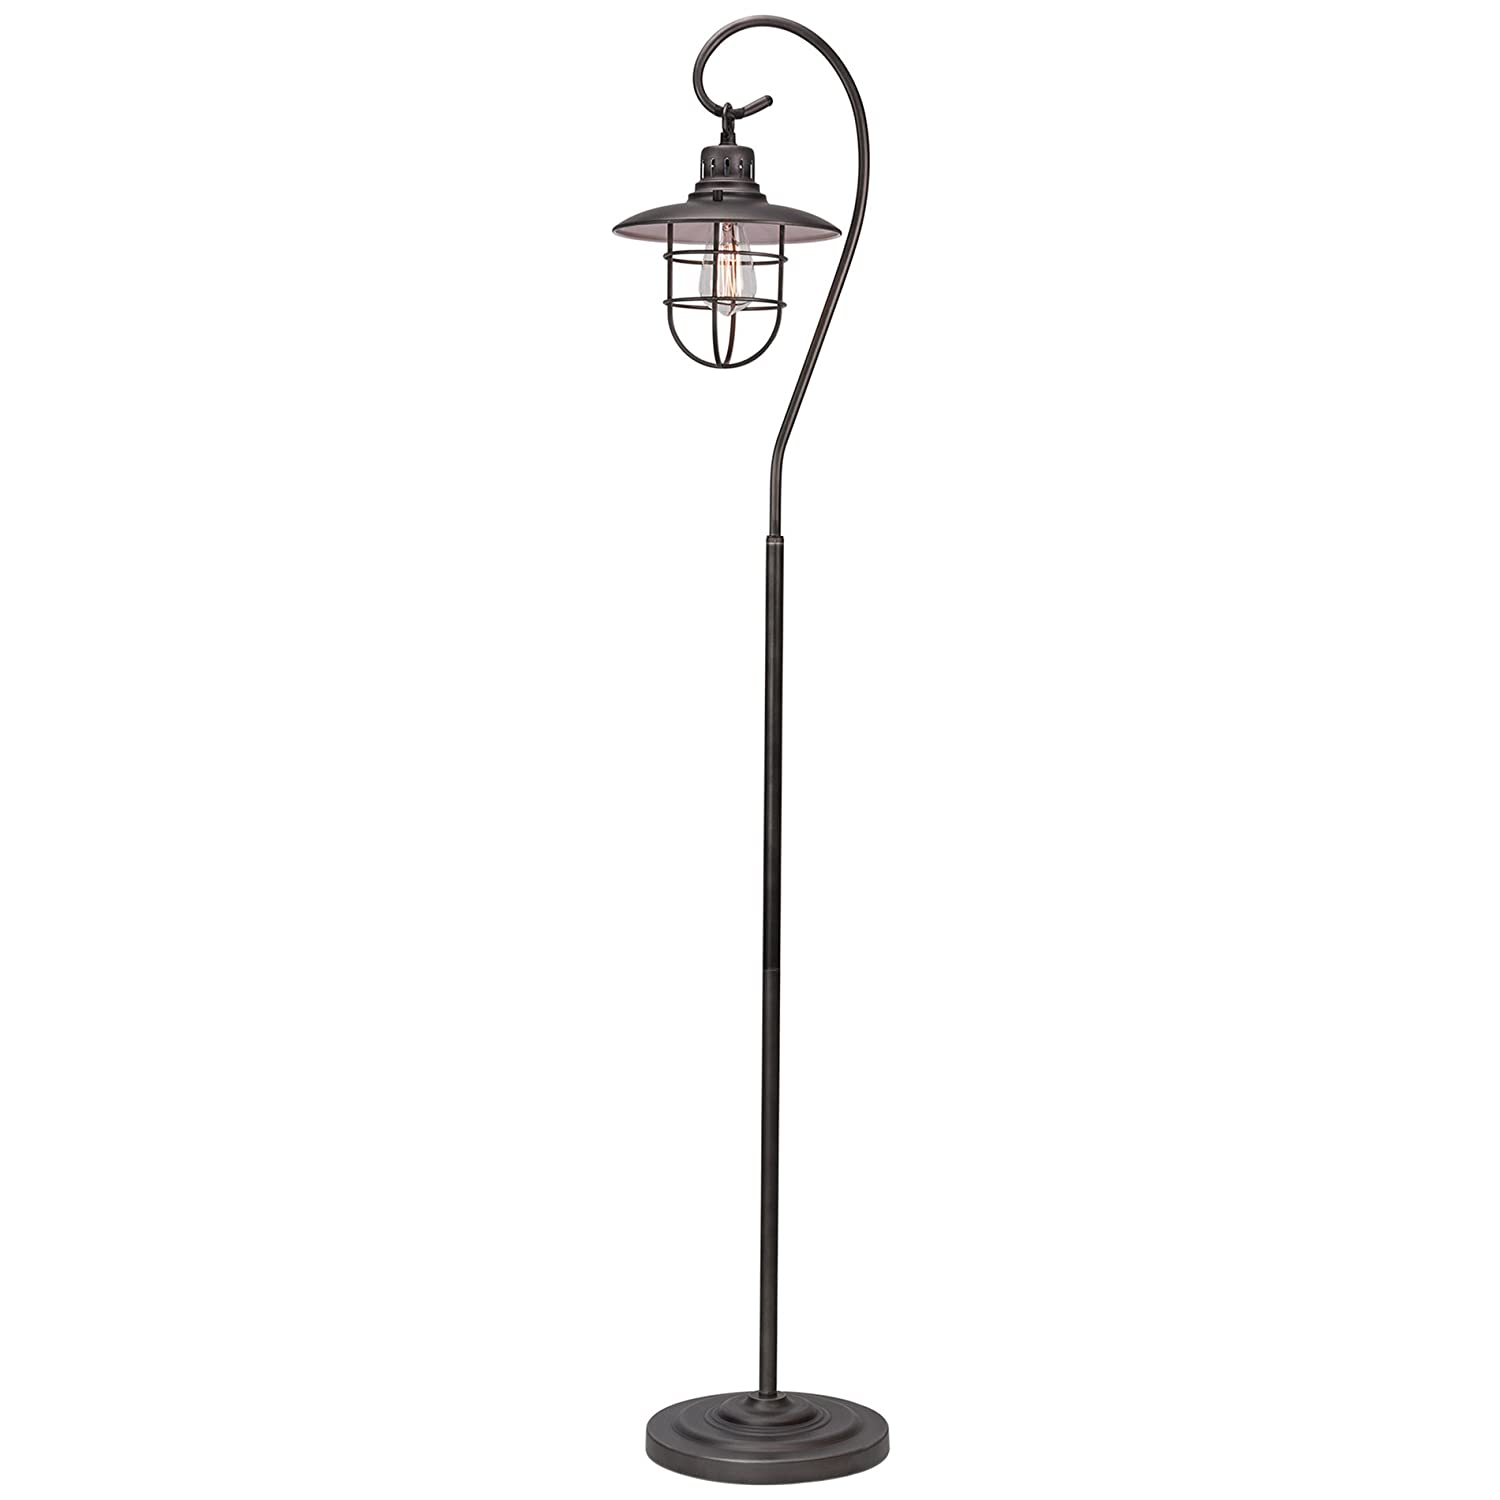 "Kira Home Lantern 58"" Industrial Floor Lamp + Hanging Shade Design + Cage, Brushed Pewter Finish"